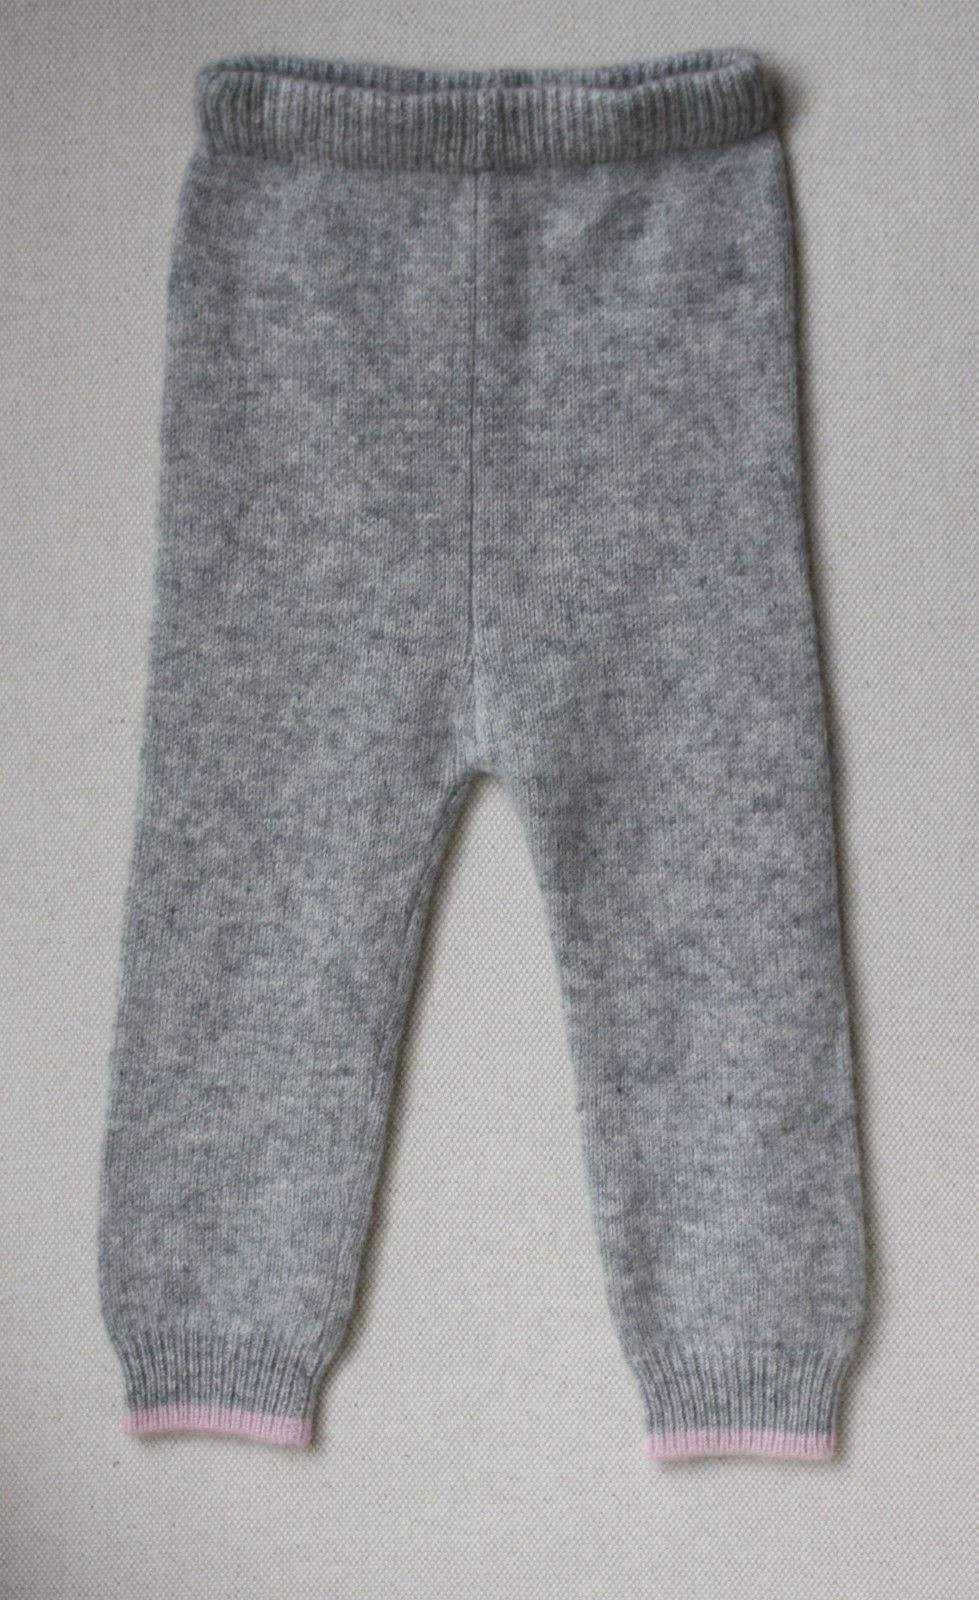 CASHMIRINO BABY GREY AND PINK TOP AND LEGGINGS OUTFIT 12 MONTHS